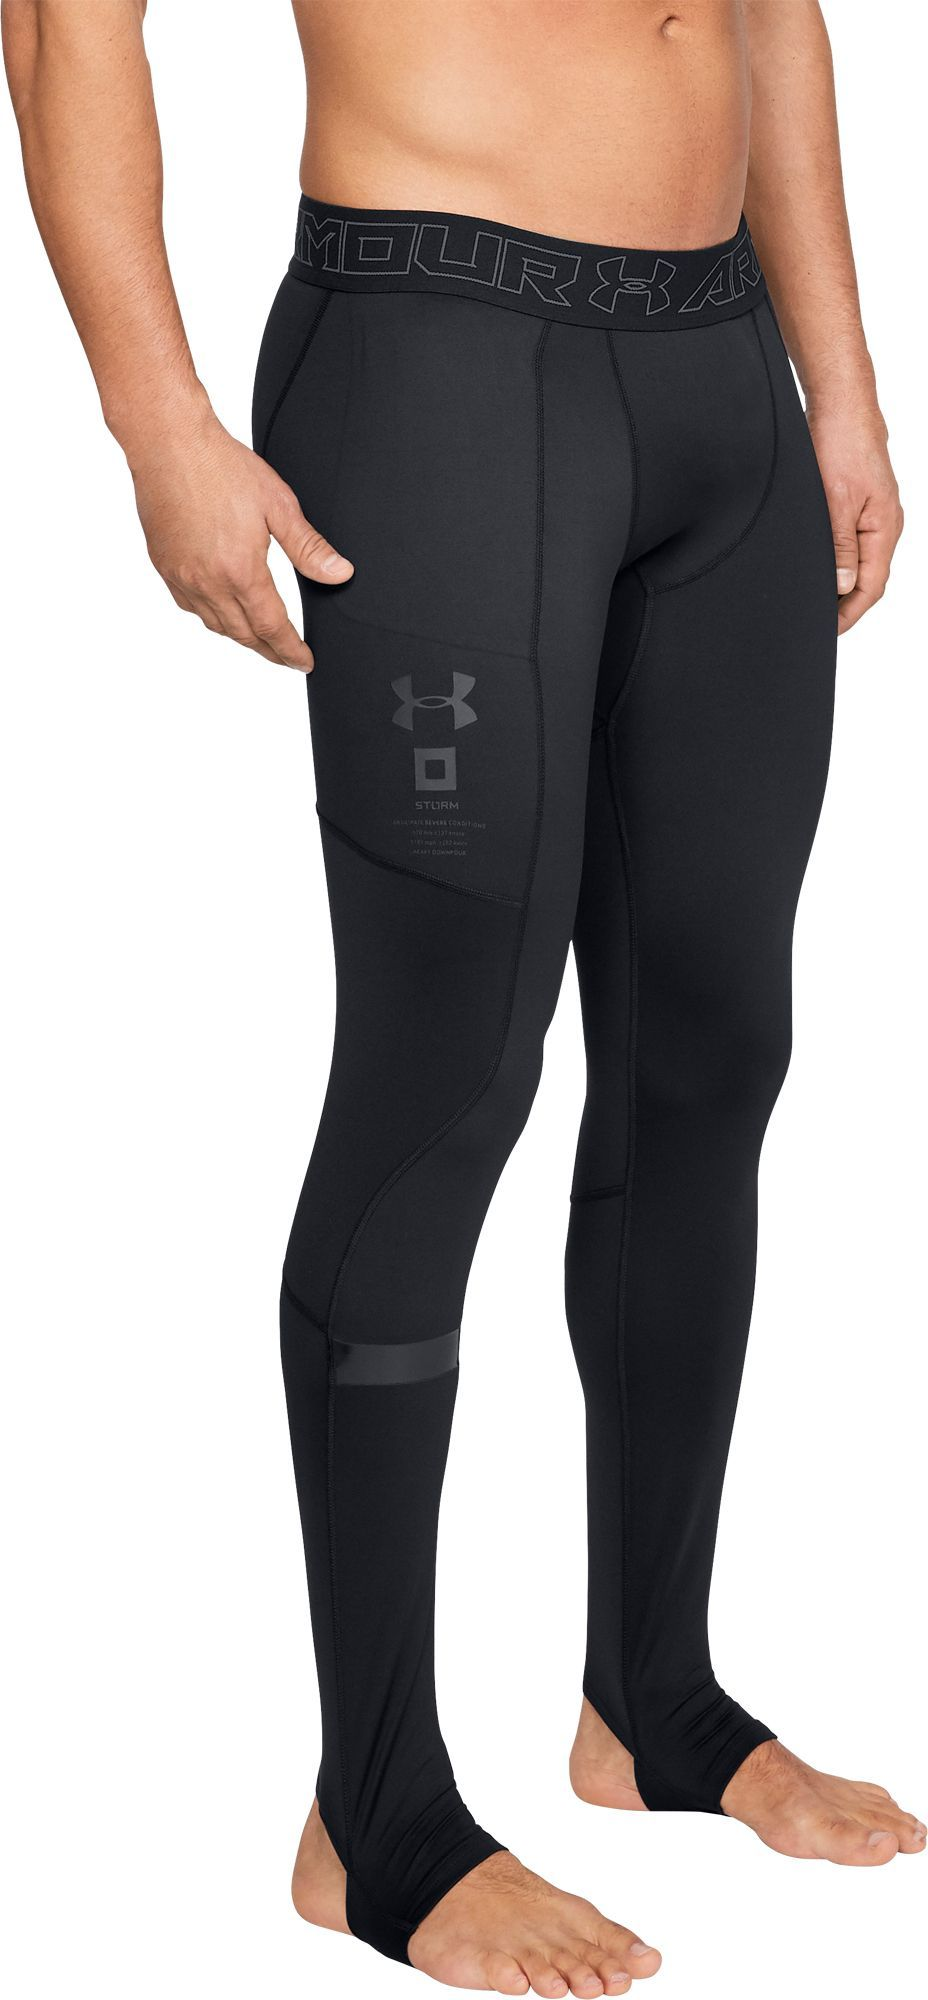 365dd70a3f4c1c Under Armour Men's Storm Cyclone ColdGear Leggings in 2019 ...